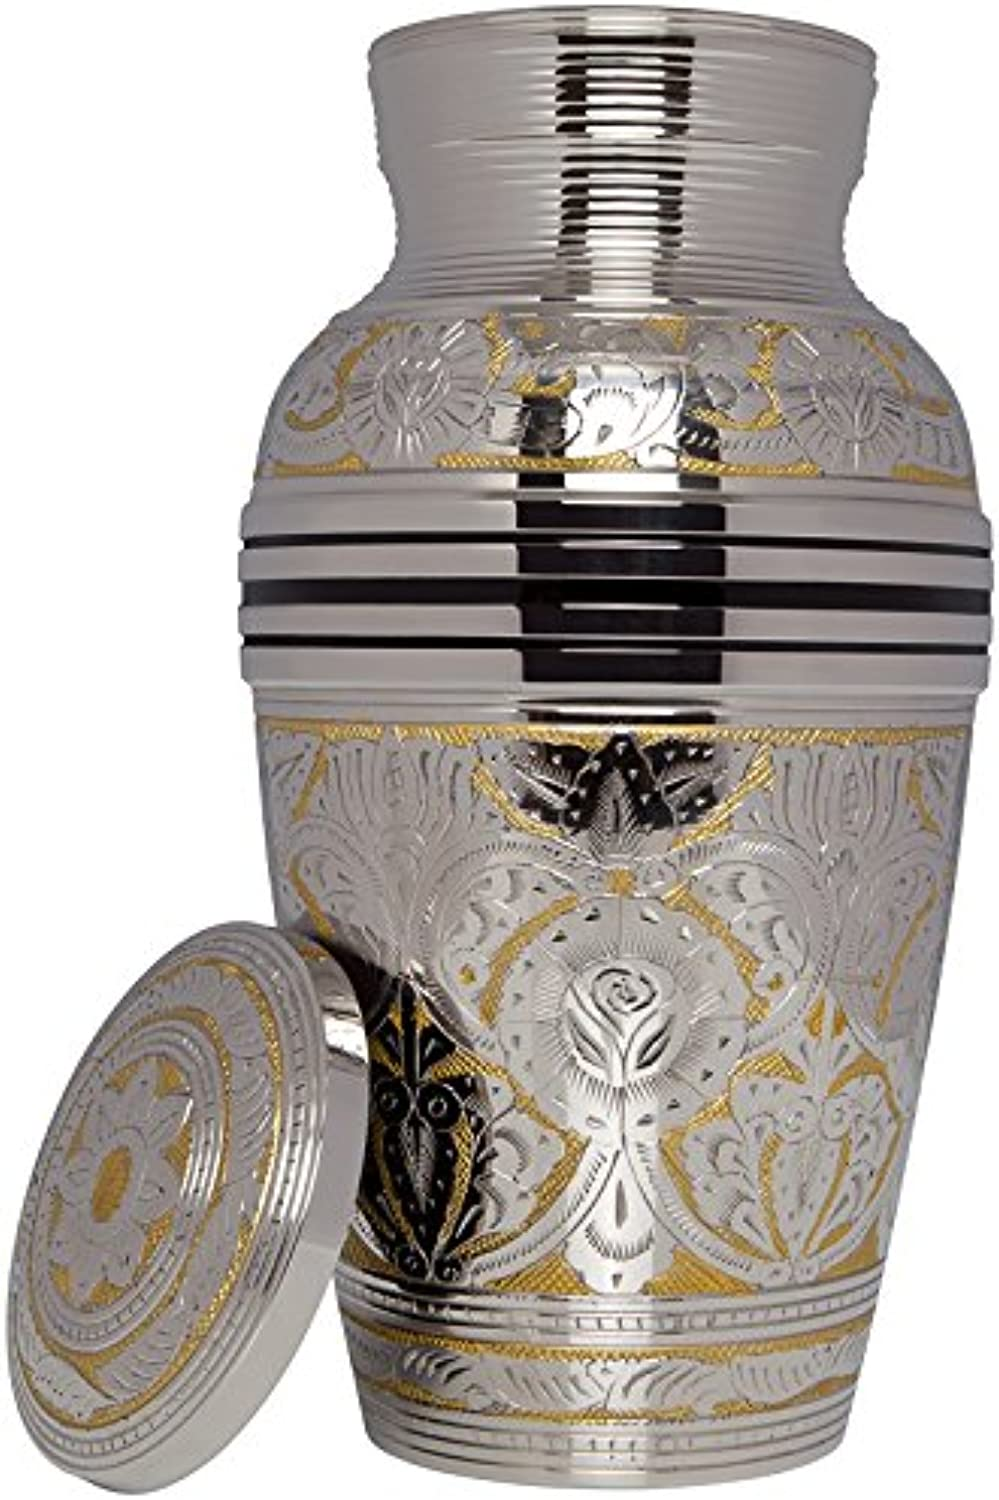 Silver Funeral Urn by Liliane Memorials - Cremation Urn for Human Ashes - Hand Made in Brass - Suitable for Cemetery Burial or Niche - Large Size fits remains of Adults up to 200 lbs - Rimini Model